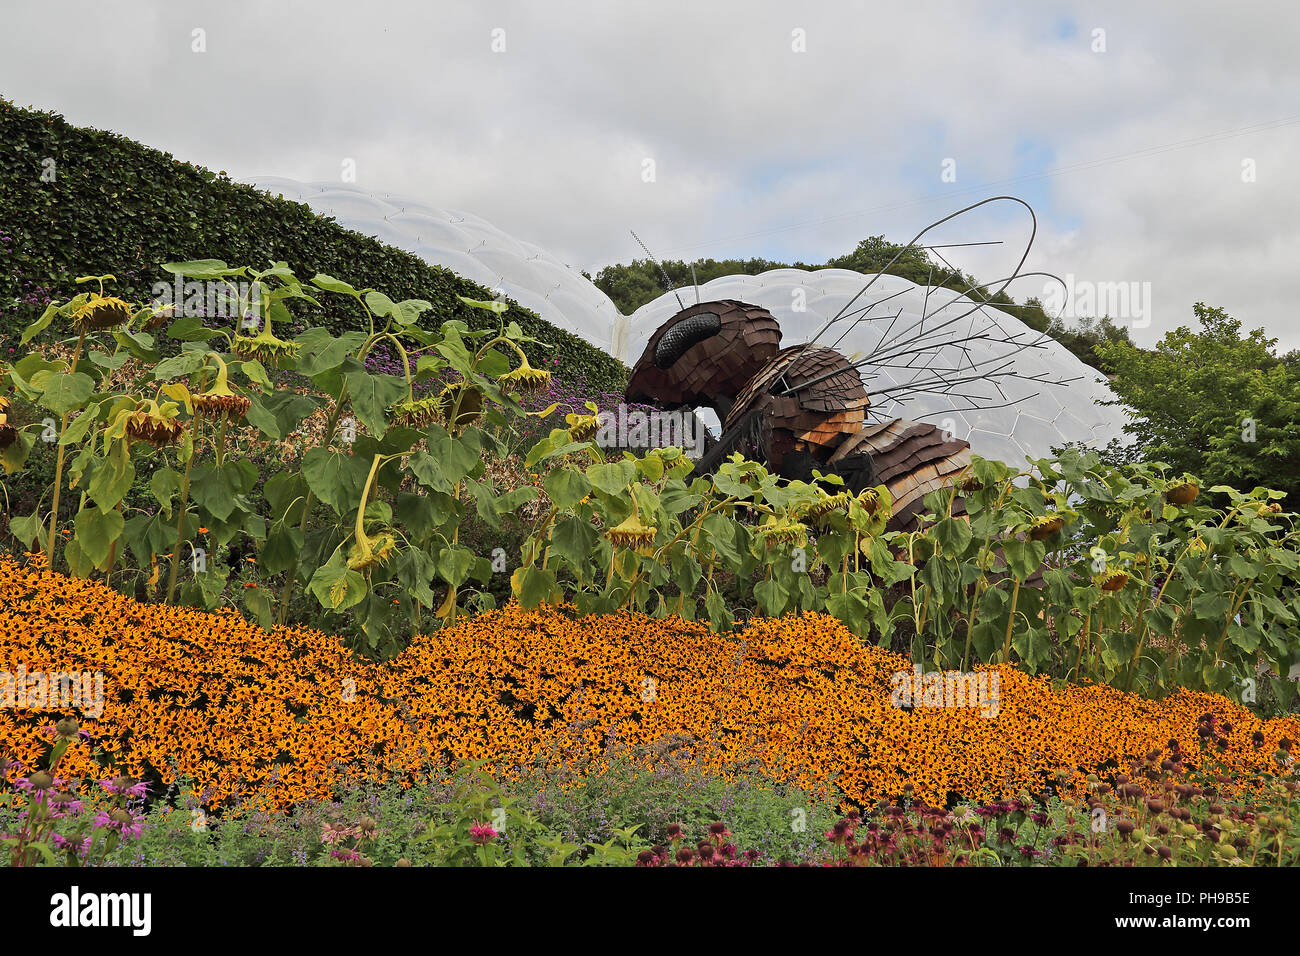 A large model of a bee at the Eden Project, St Blazey, Cornwall, UK - Stock Image